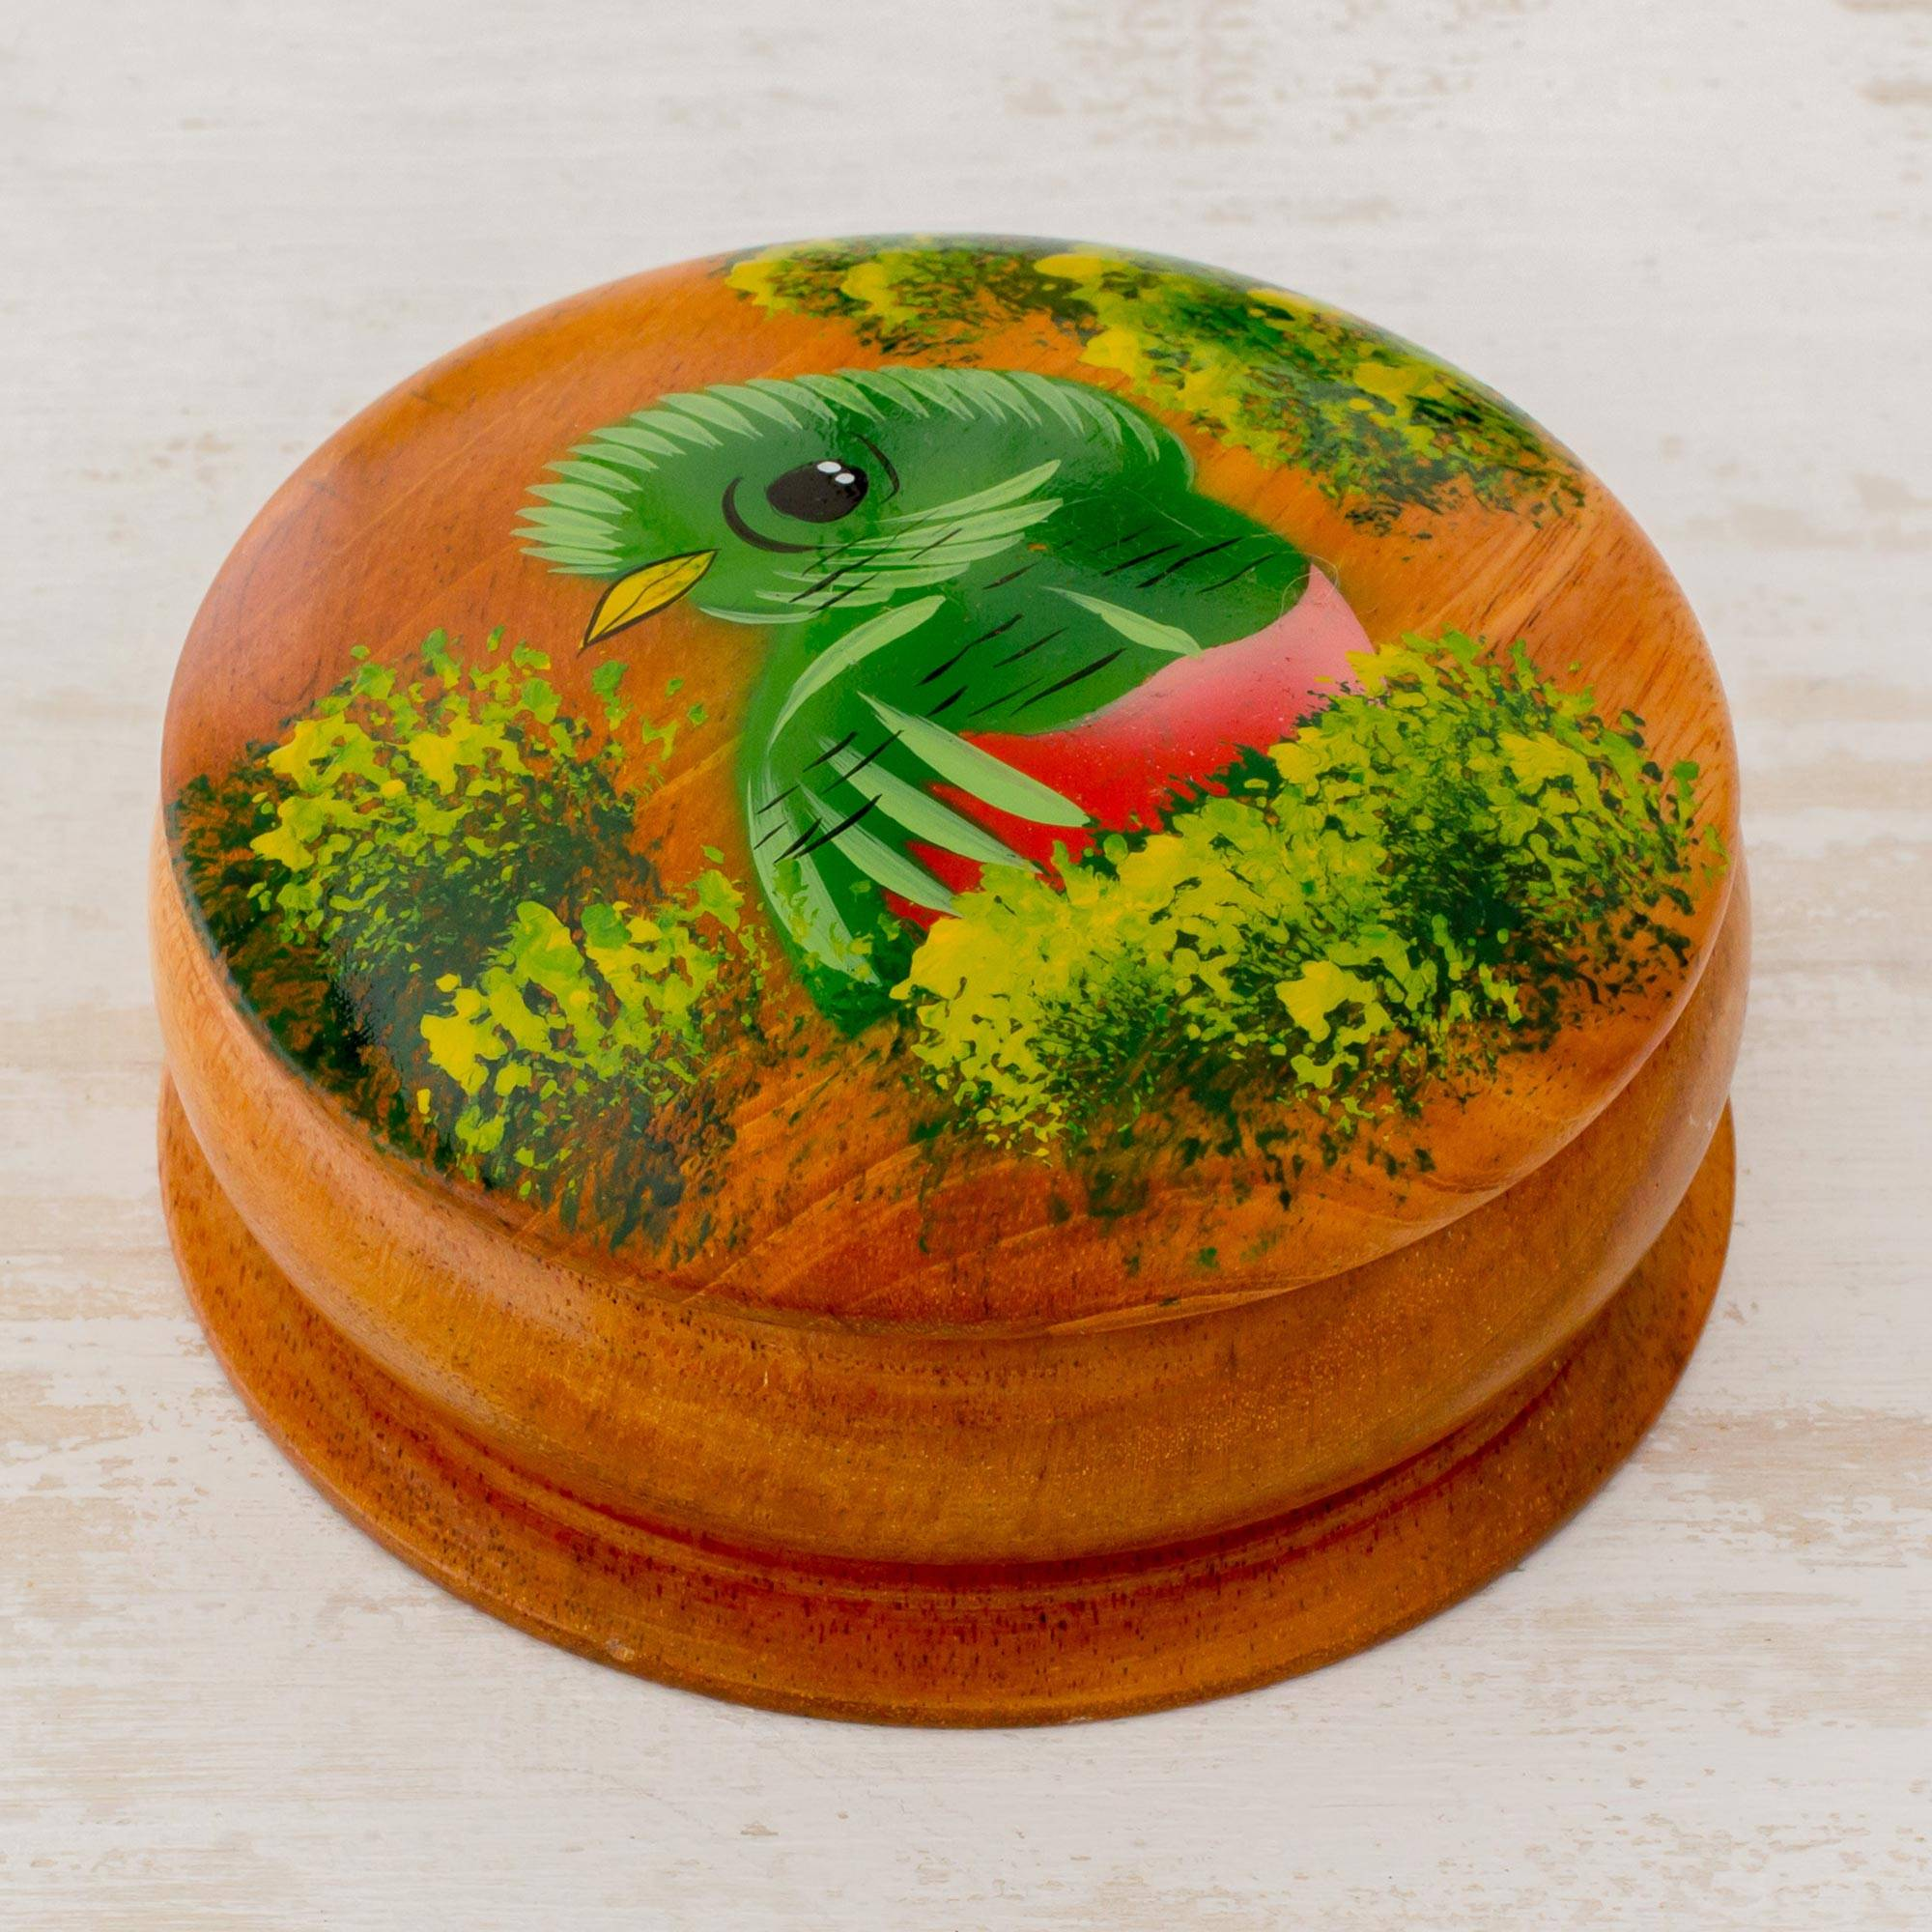 Curious Quetzal Round Cedar Decorative Box with Hand Painted Quetzal Inspiration For Their Woodcrafts